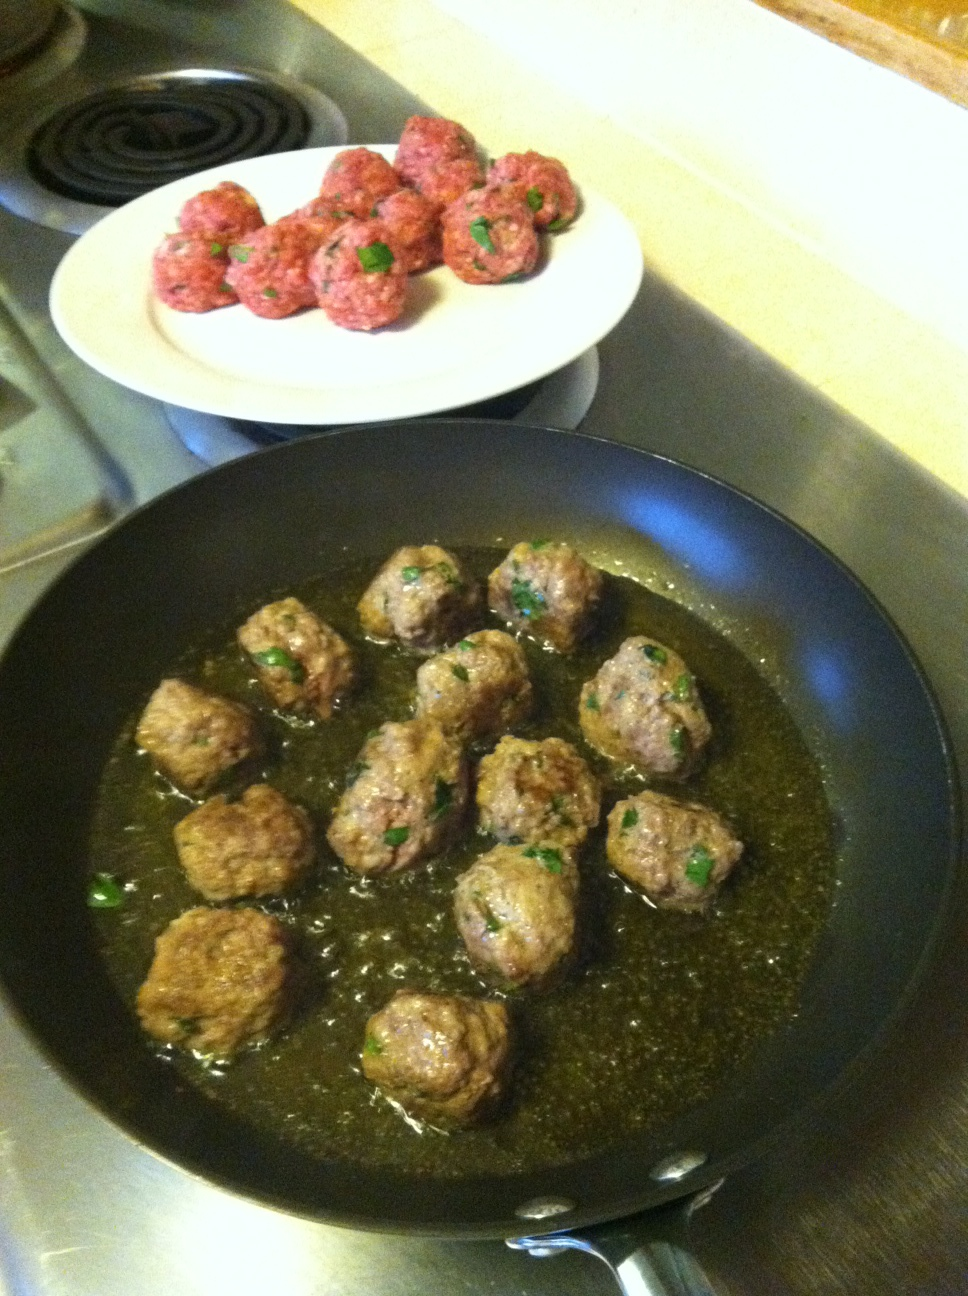 First batch of meatballs in the works